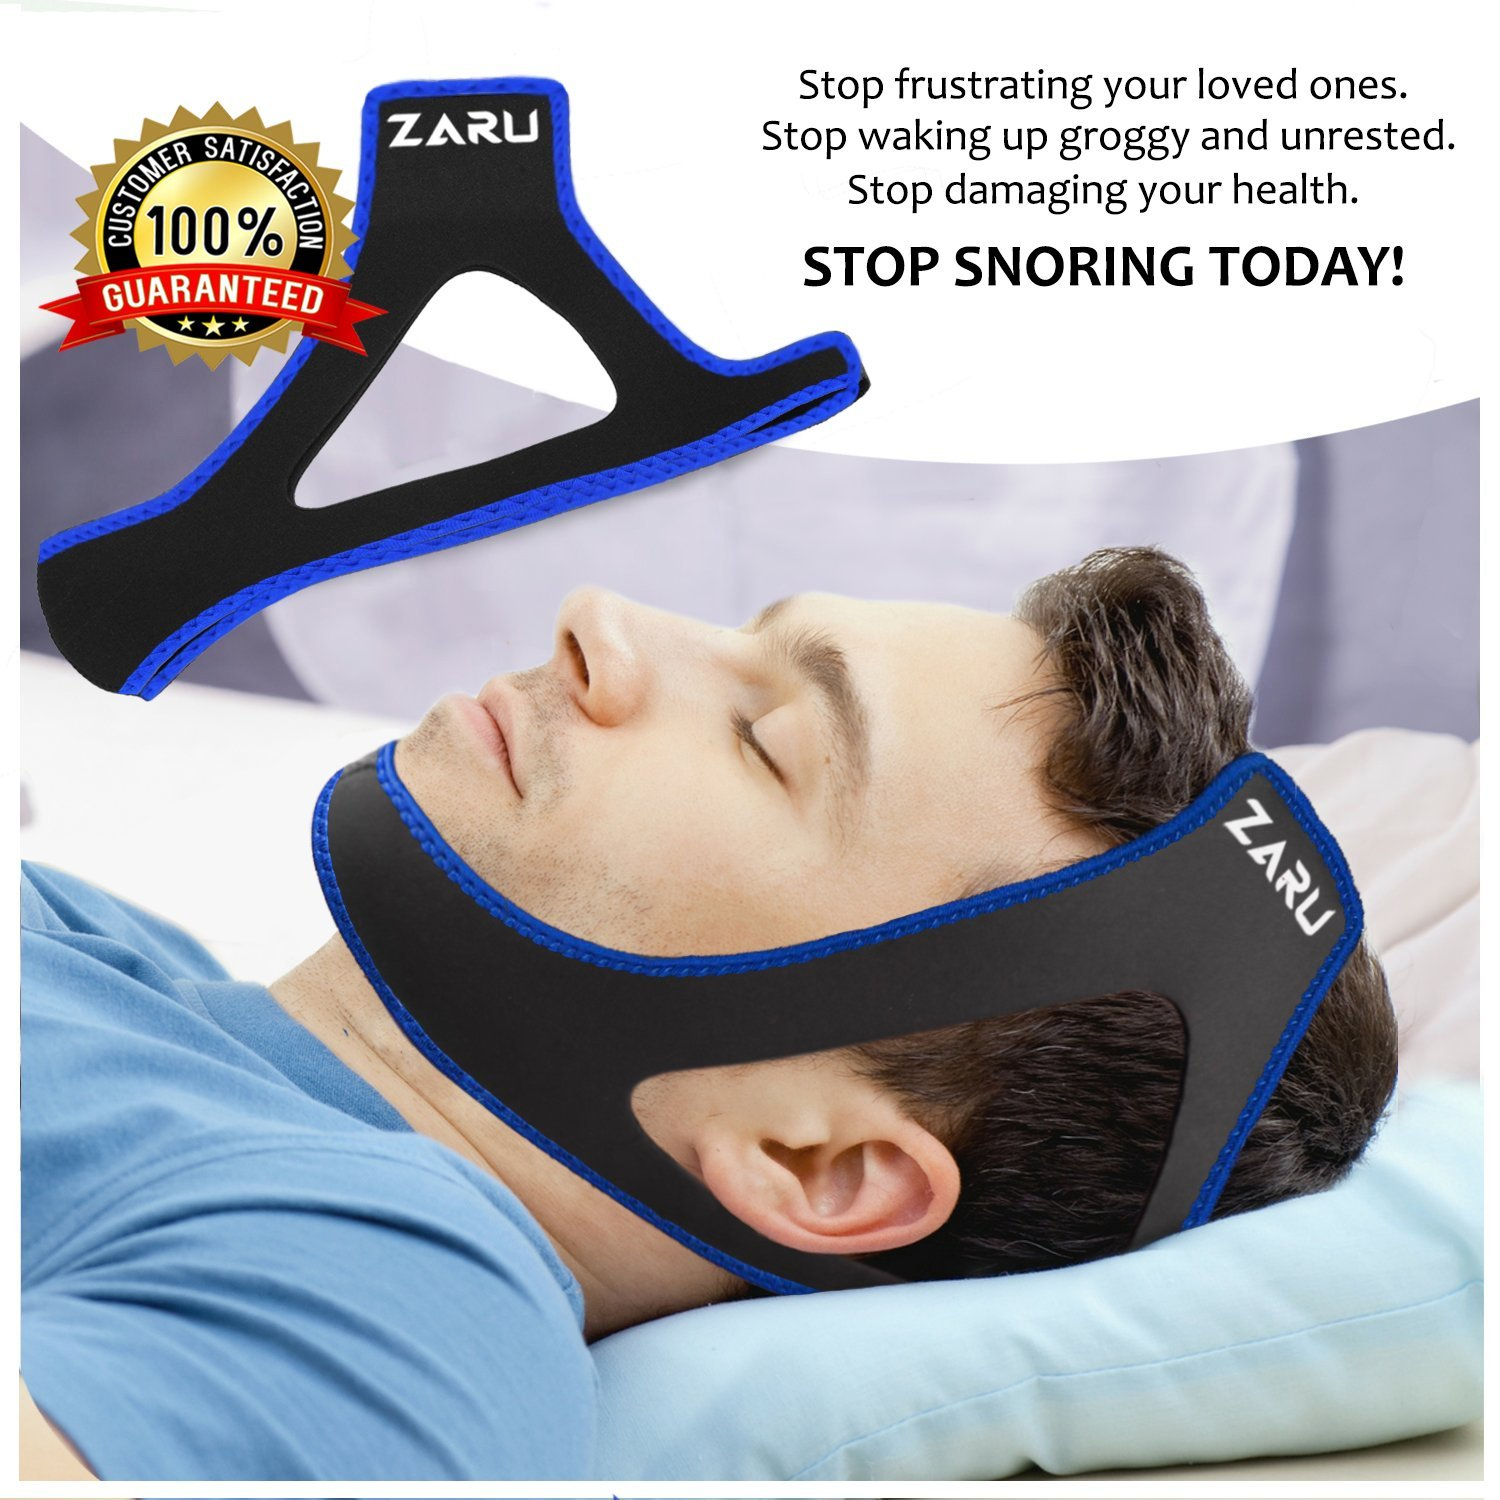 Premium Anti Snore Chin Strap [2019 Upgraded Version] - Advanced Snoring Solution Scientifically Designed to Stop Snoring Naturally and Give You The Best Sleep of Your Life! (Black)